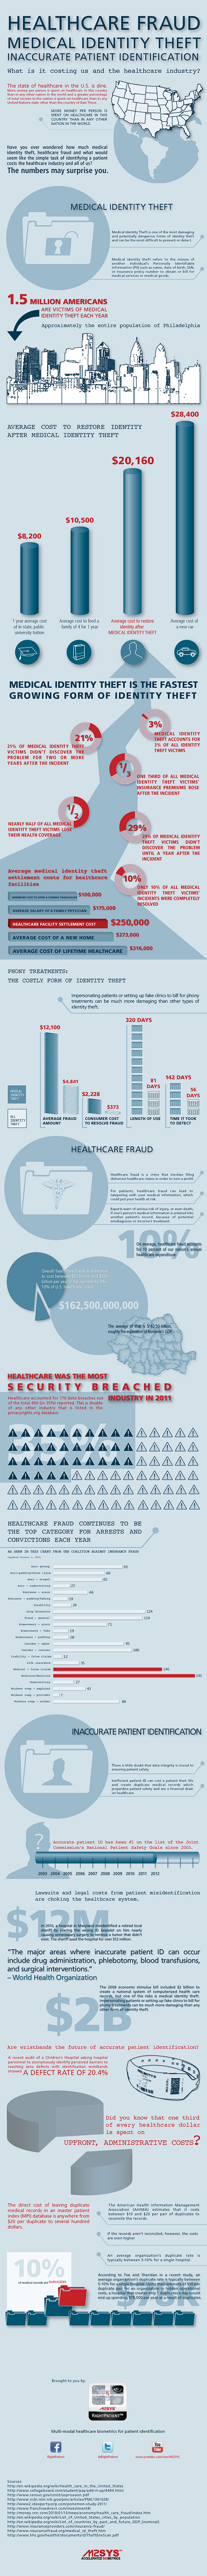 Infographic on Medical Identity Theft | Healthcare Fraud & Identity Theft